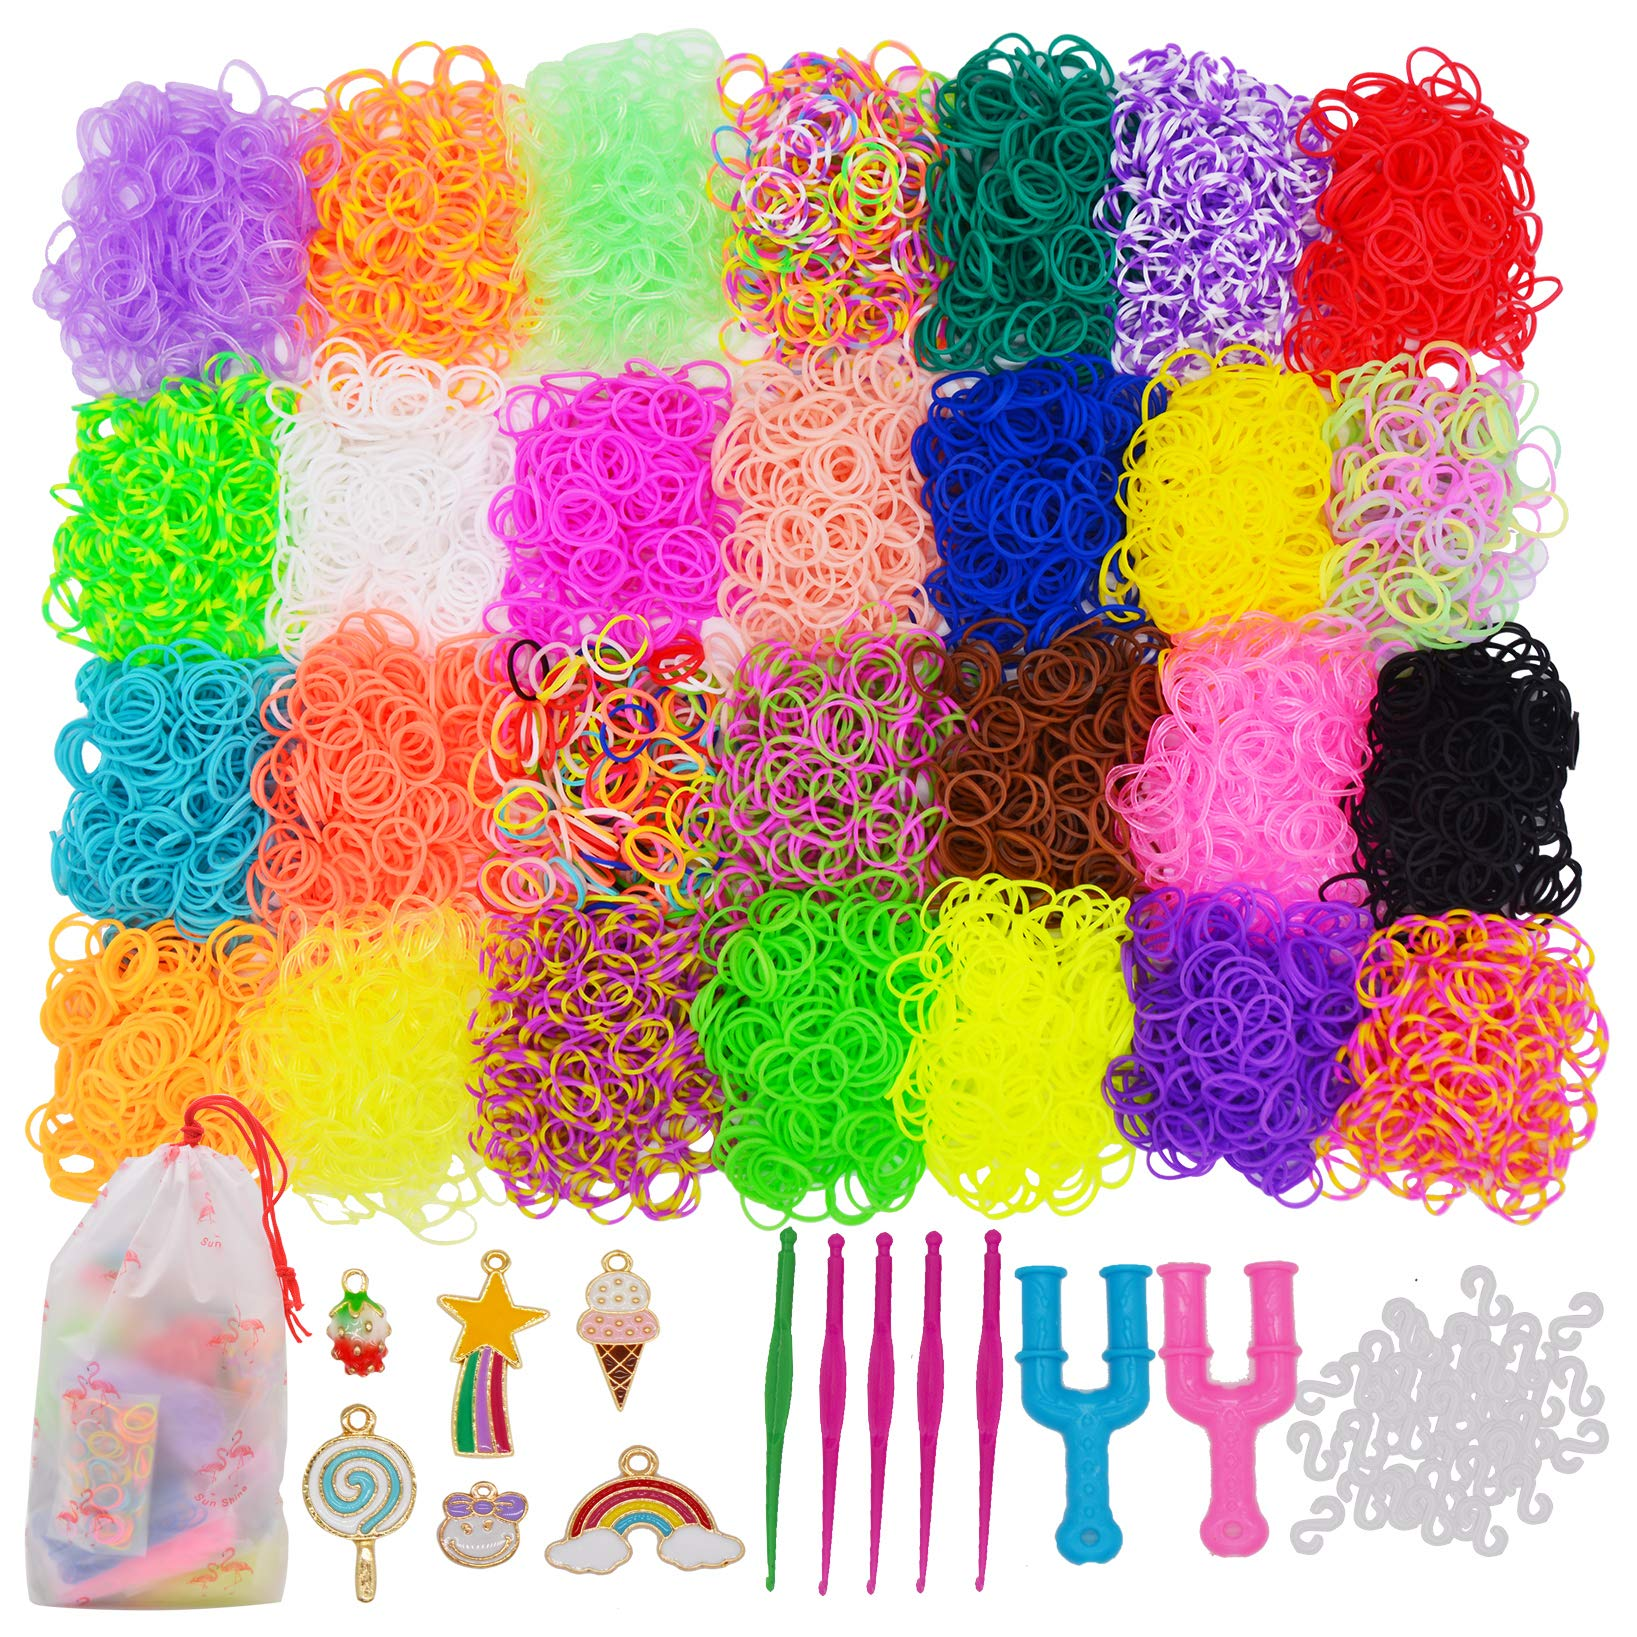 Rainbow Rubber Bands Loom Set 28 Colors Premium Loom Bands with S Clips,Y Looms,Crochet Hooks,Cute Pendants and Organizer Case